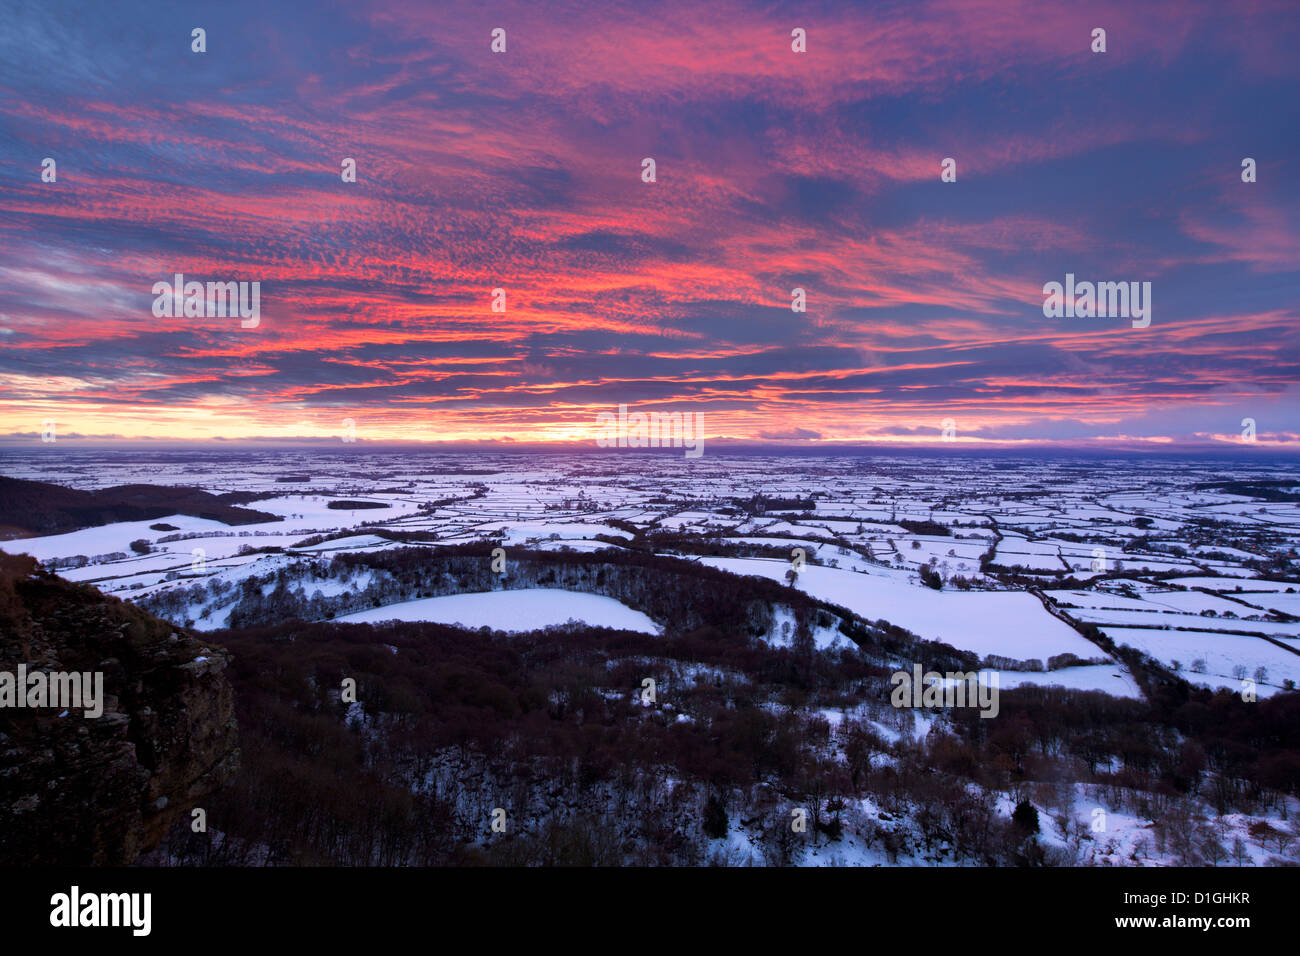 Fiery sunset over a Gormire couvertes de neige Lake, North Yorkshire, Yorkshire, Angleterre, Royaume-Uni, Europe Photo Stock